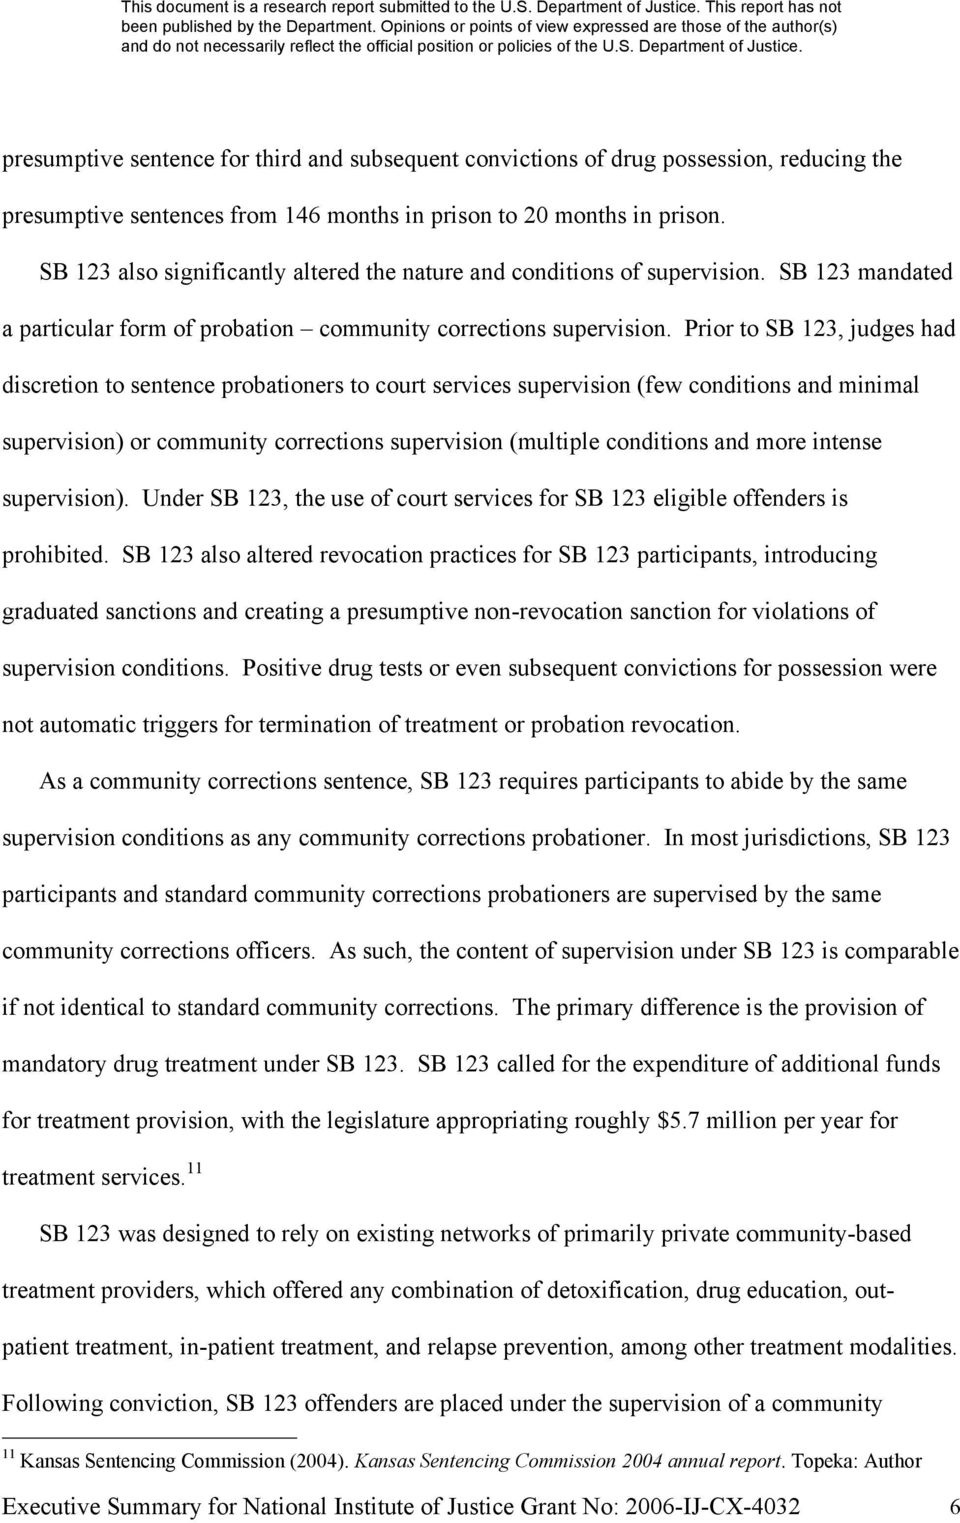 Prior to SB 123, judges had discretion to sentence probationers to court services supervision (few conditions and minimal supervision) or community corrections supervision (multiple conditions and